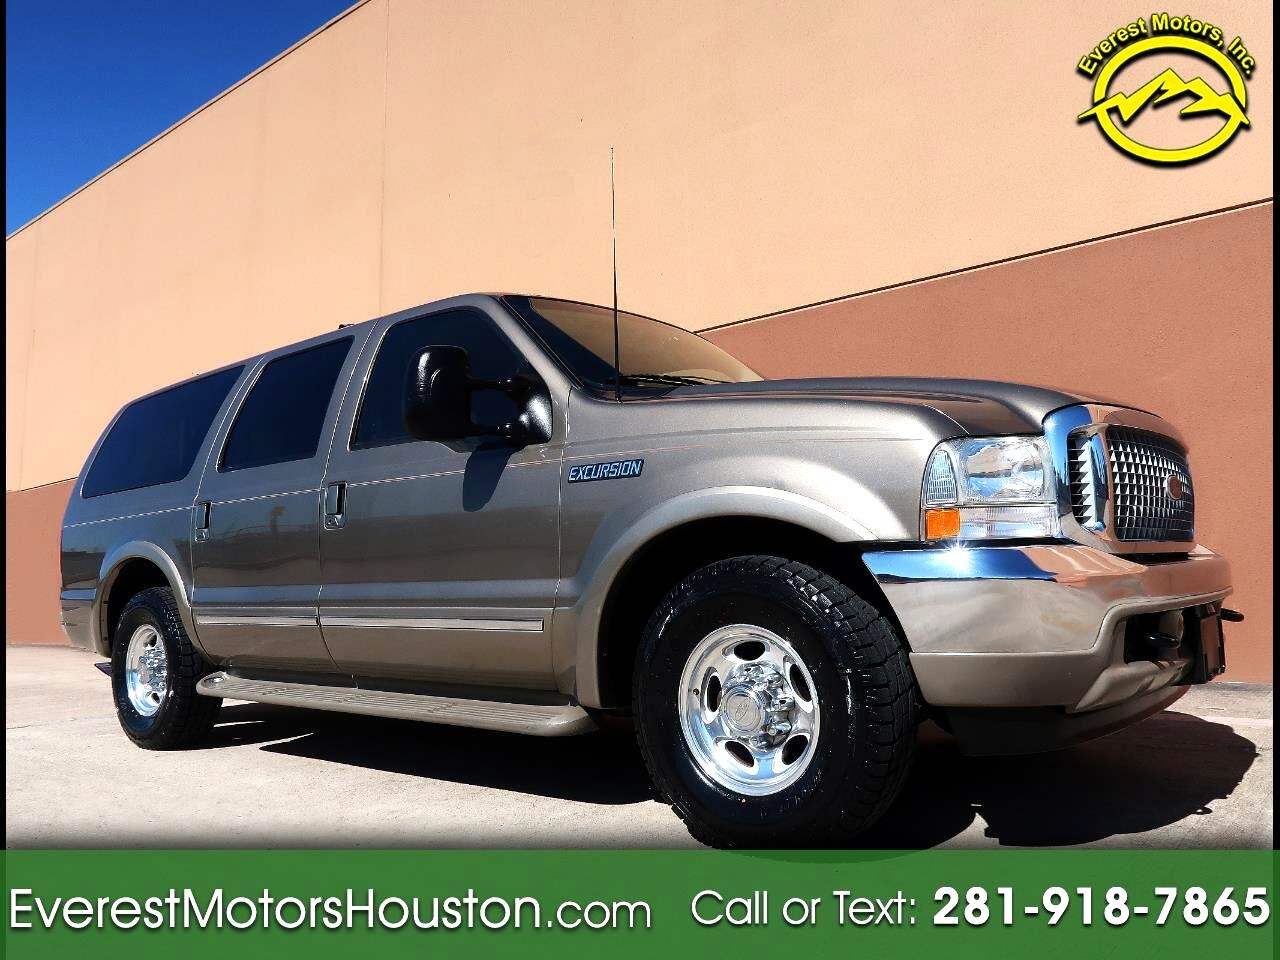 2002 Ford Excursion LIMITED 7.3L DIESEL 2WD 3RD ROW SEAT LOW MILES